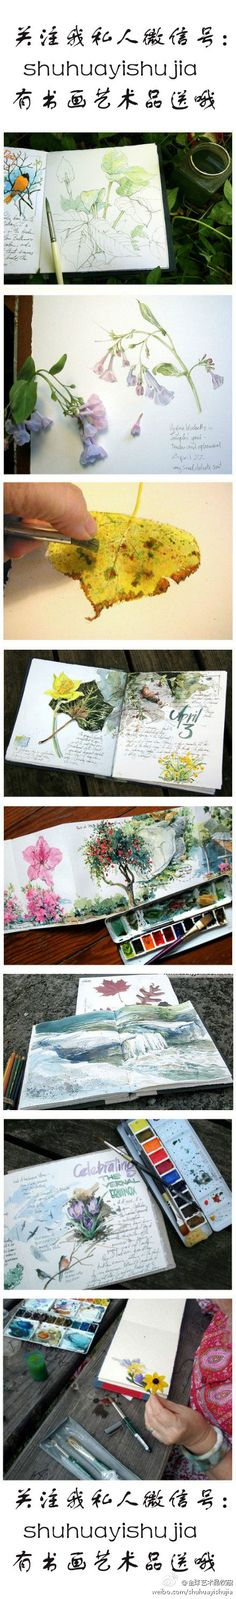 sketch book of Cathy Johnson (water color artist)